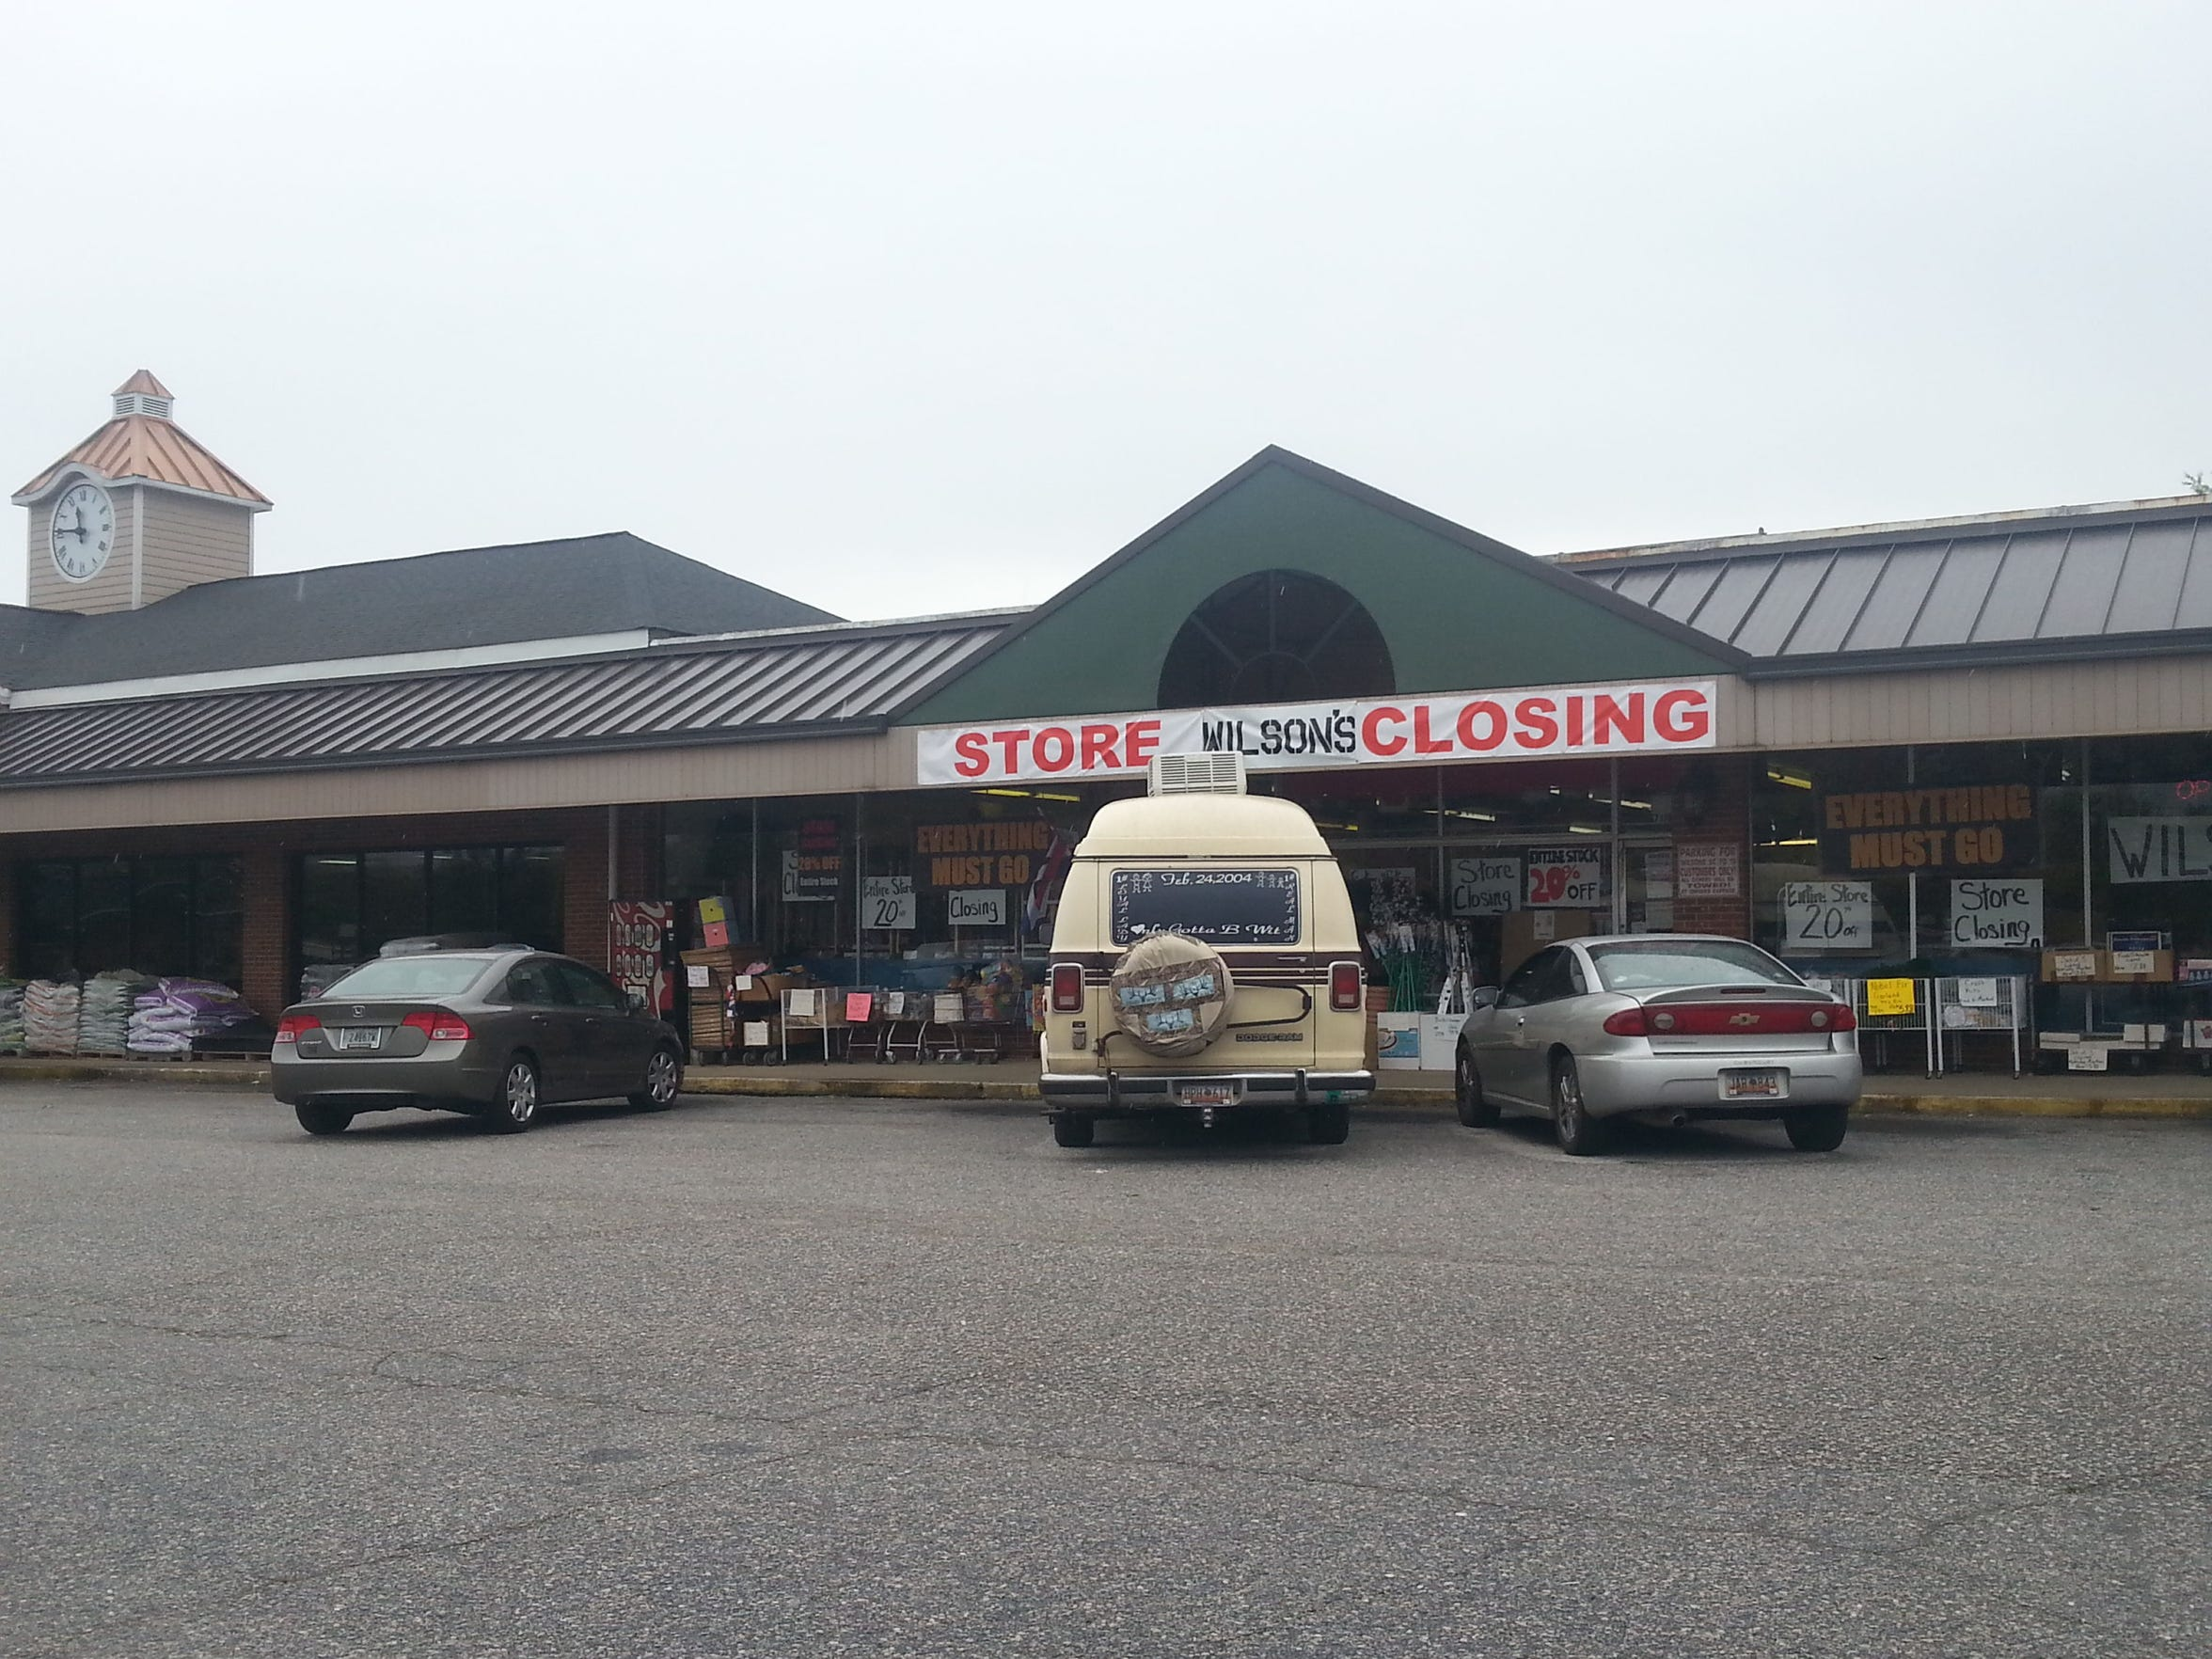 The Wilson's store, across the street from the old